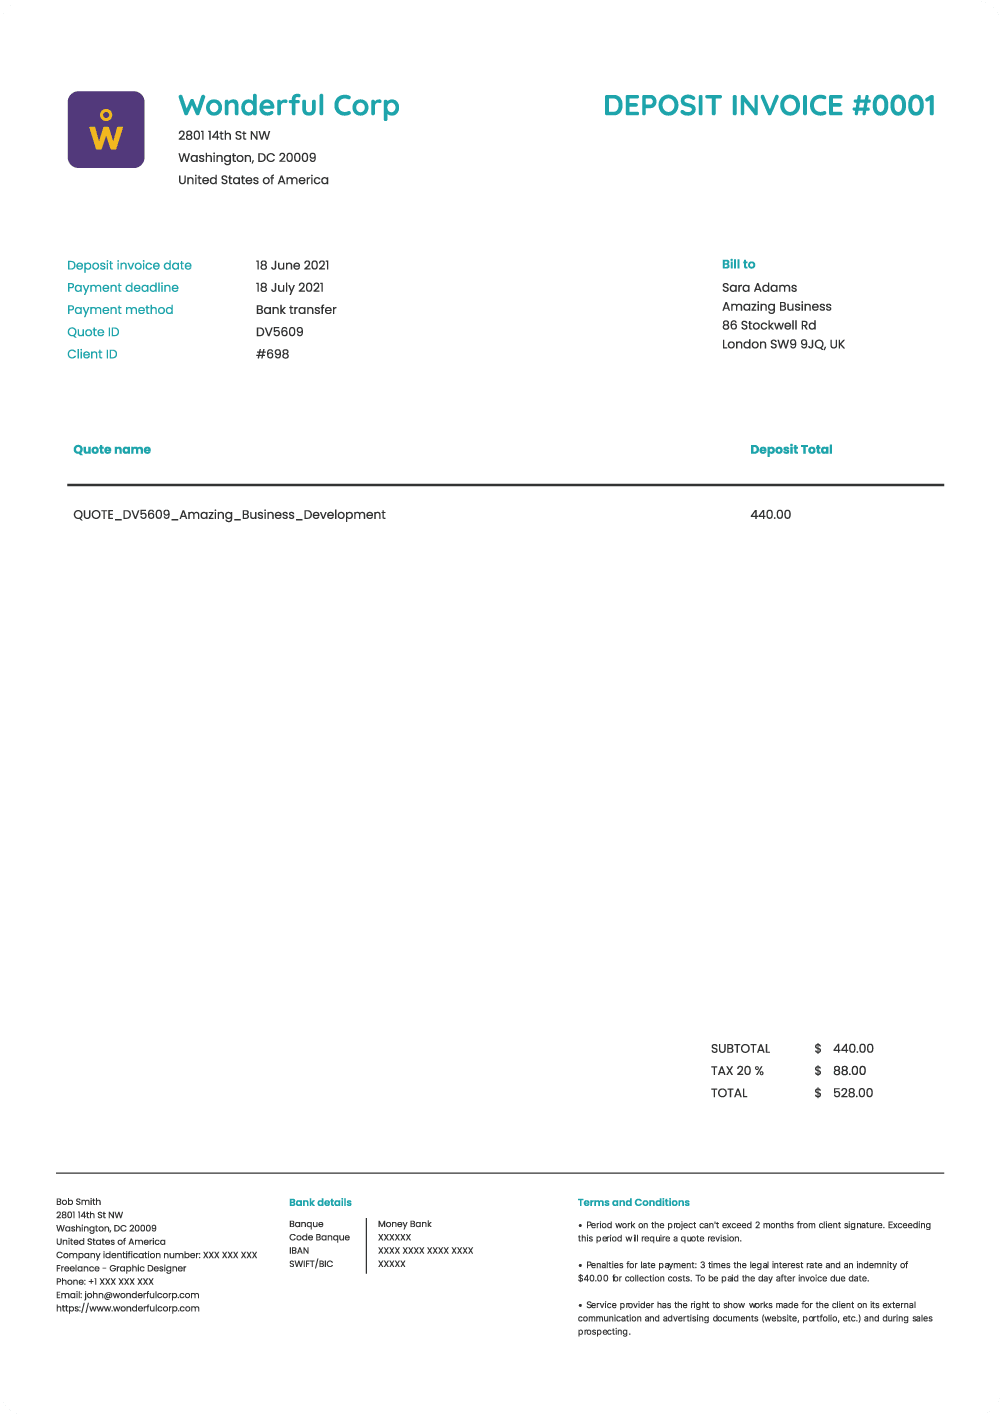 Deposit invoice preview